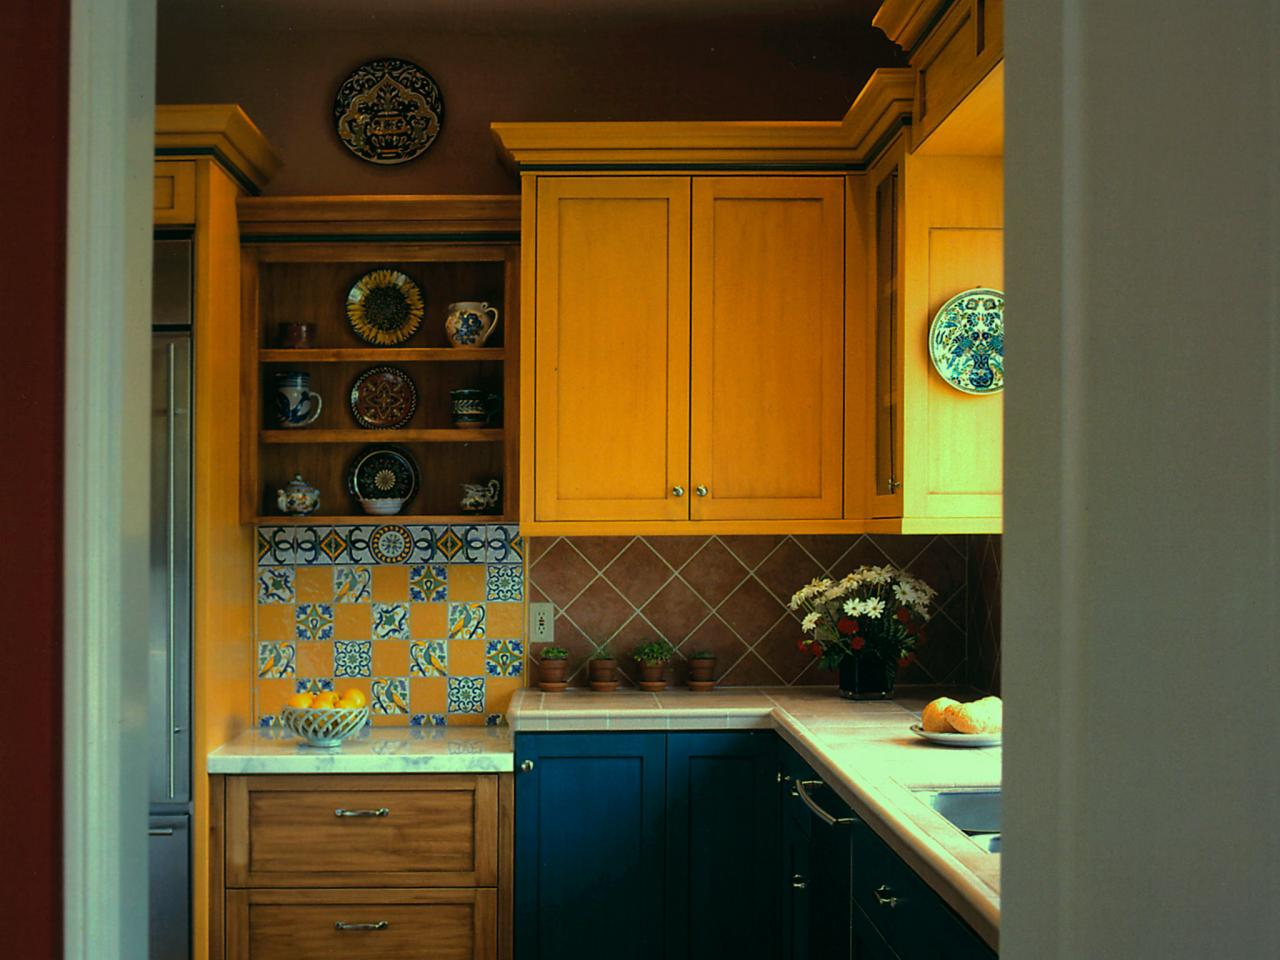 Italian Kitchen Design: Pictures, Ideas & Tips From HGTV